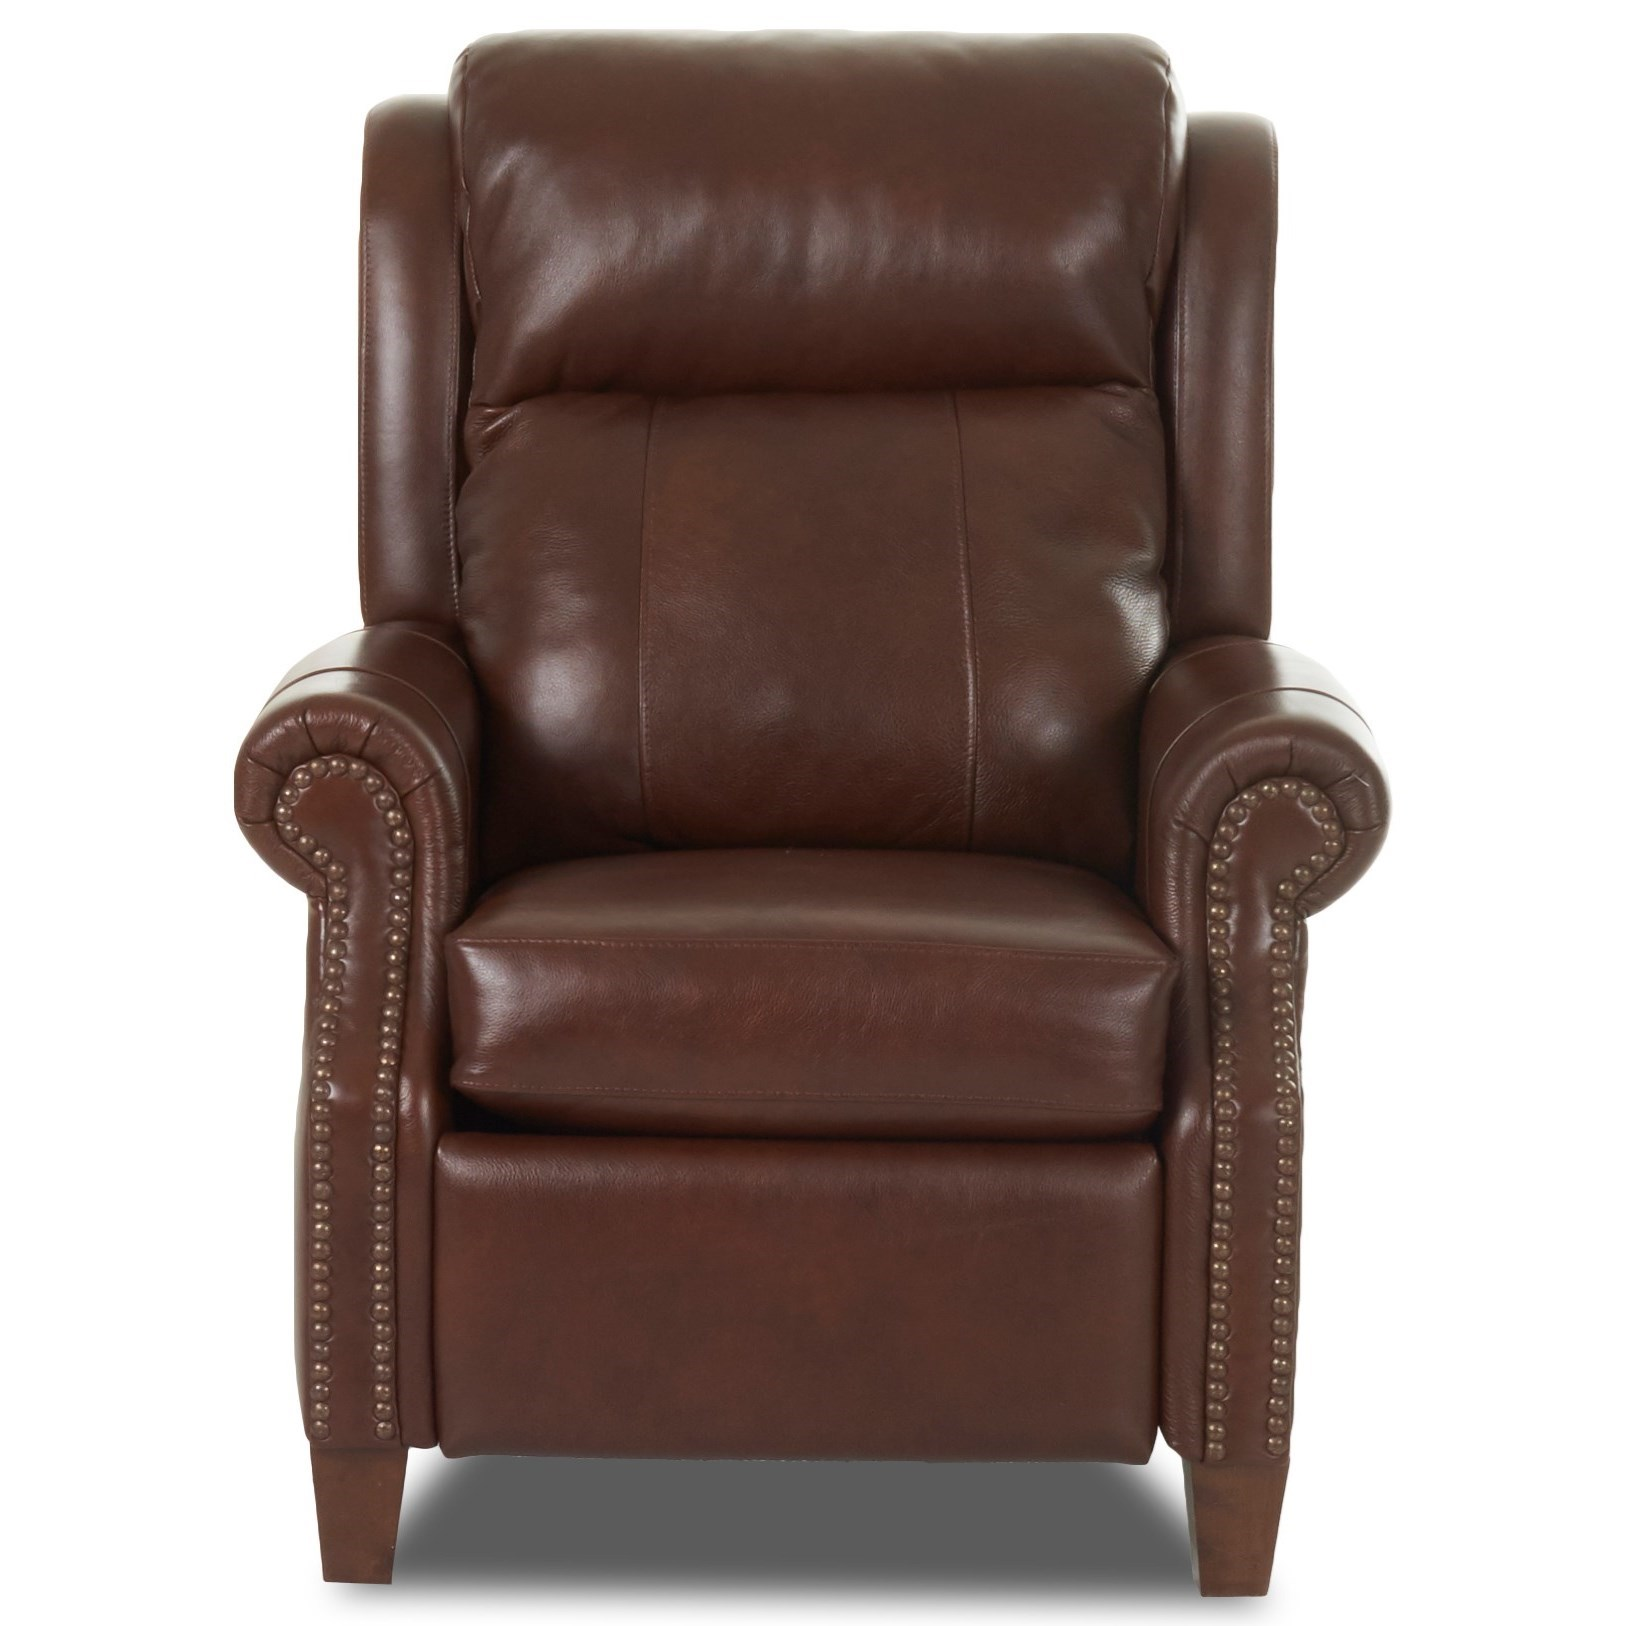 Power High Leg Recliner w/ Nailheads